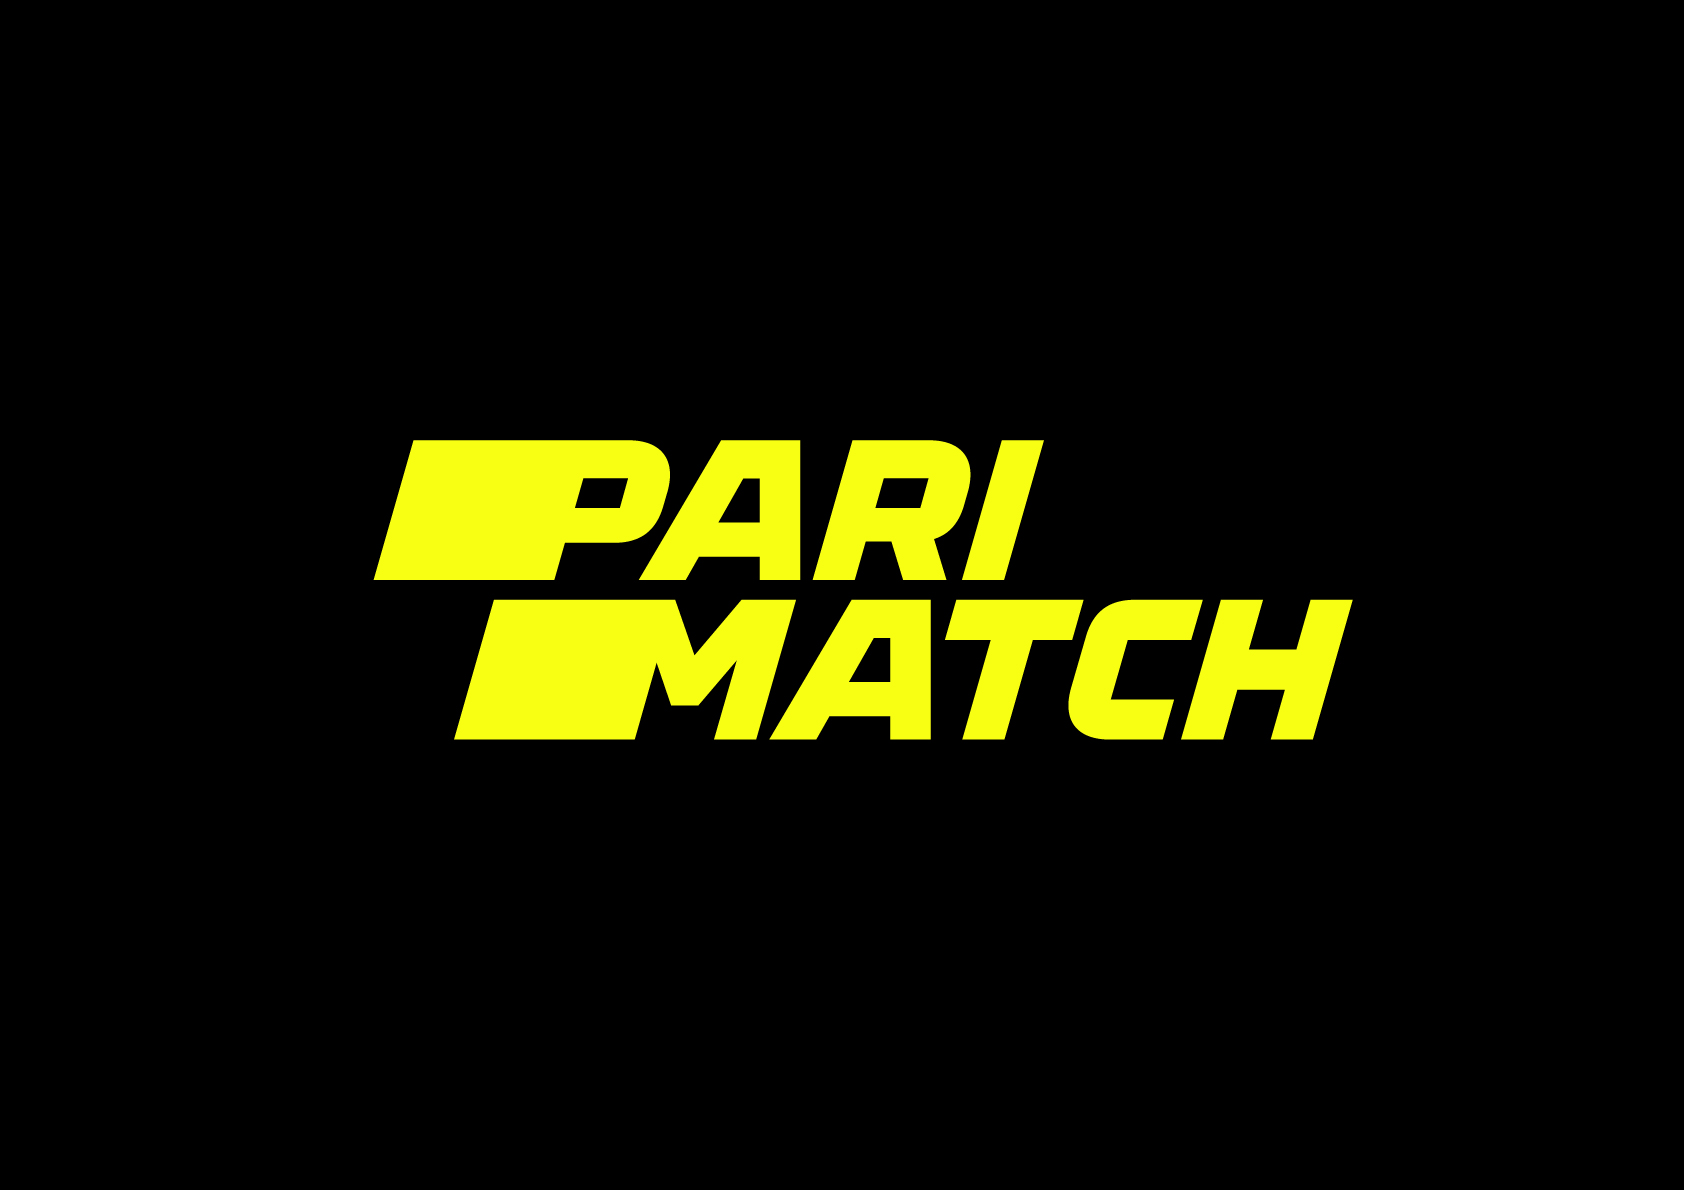 EPIC League and Parimatch announce esports betting partnership